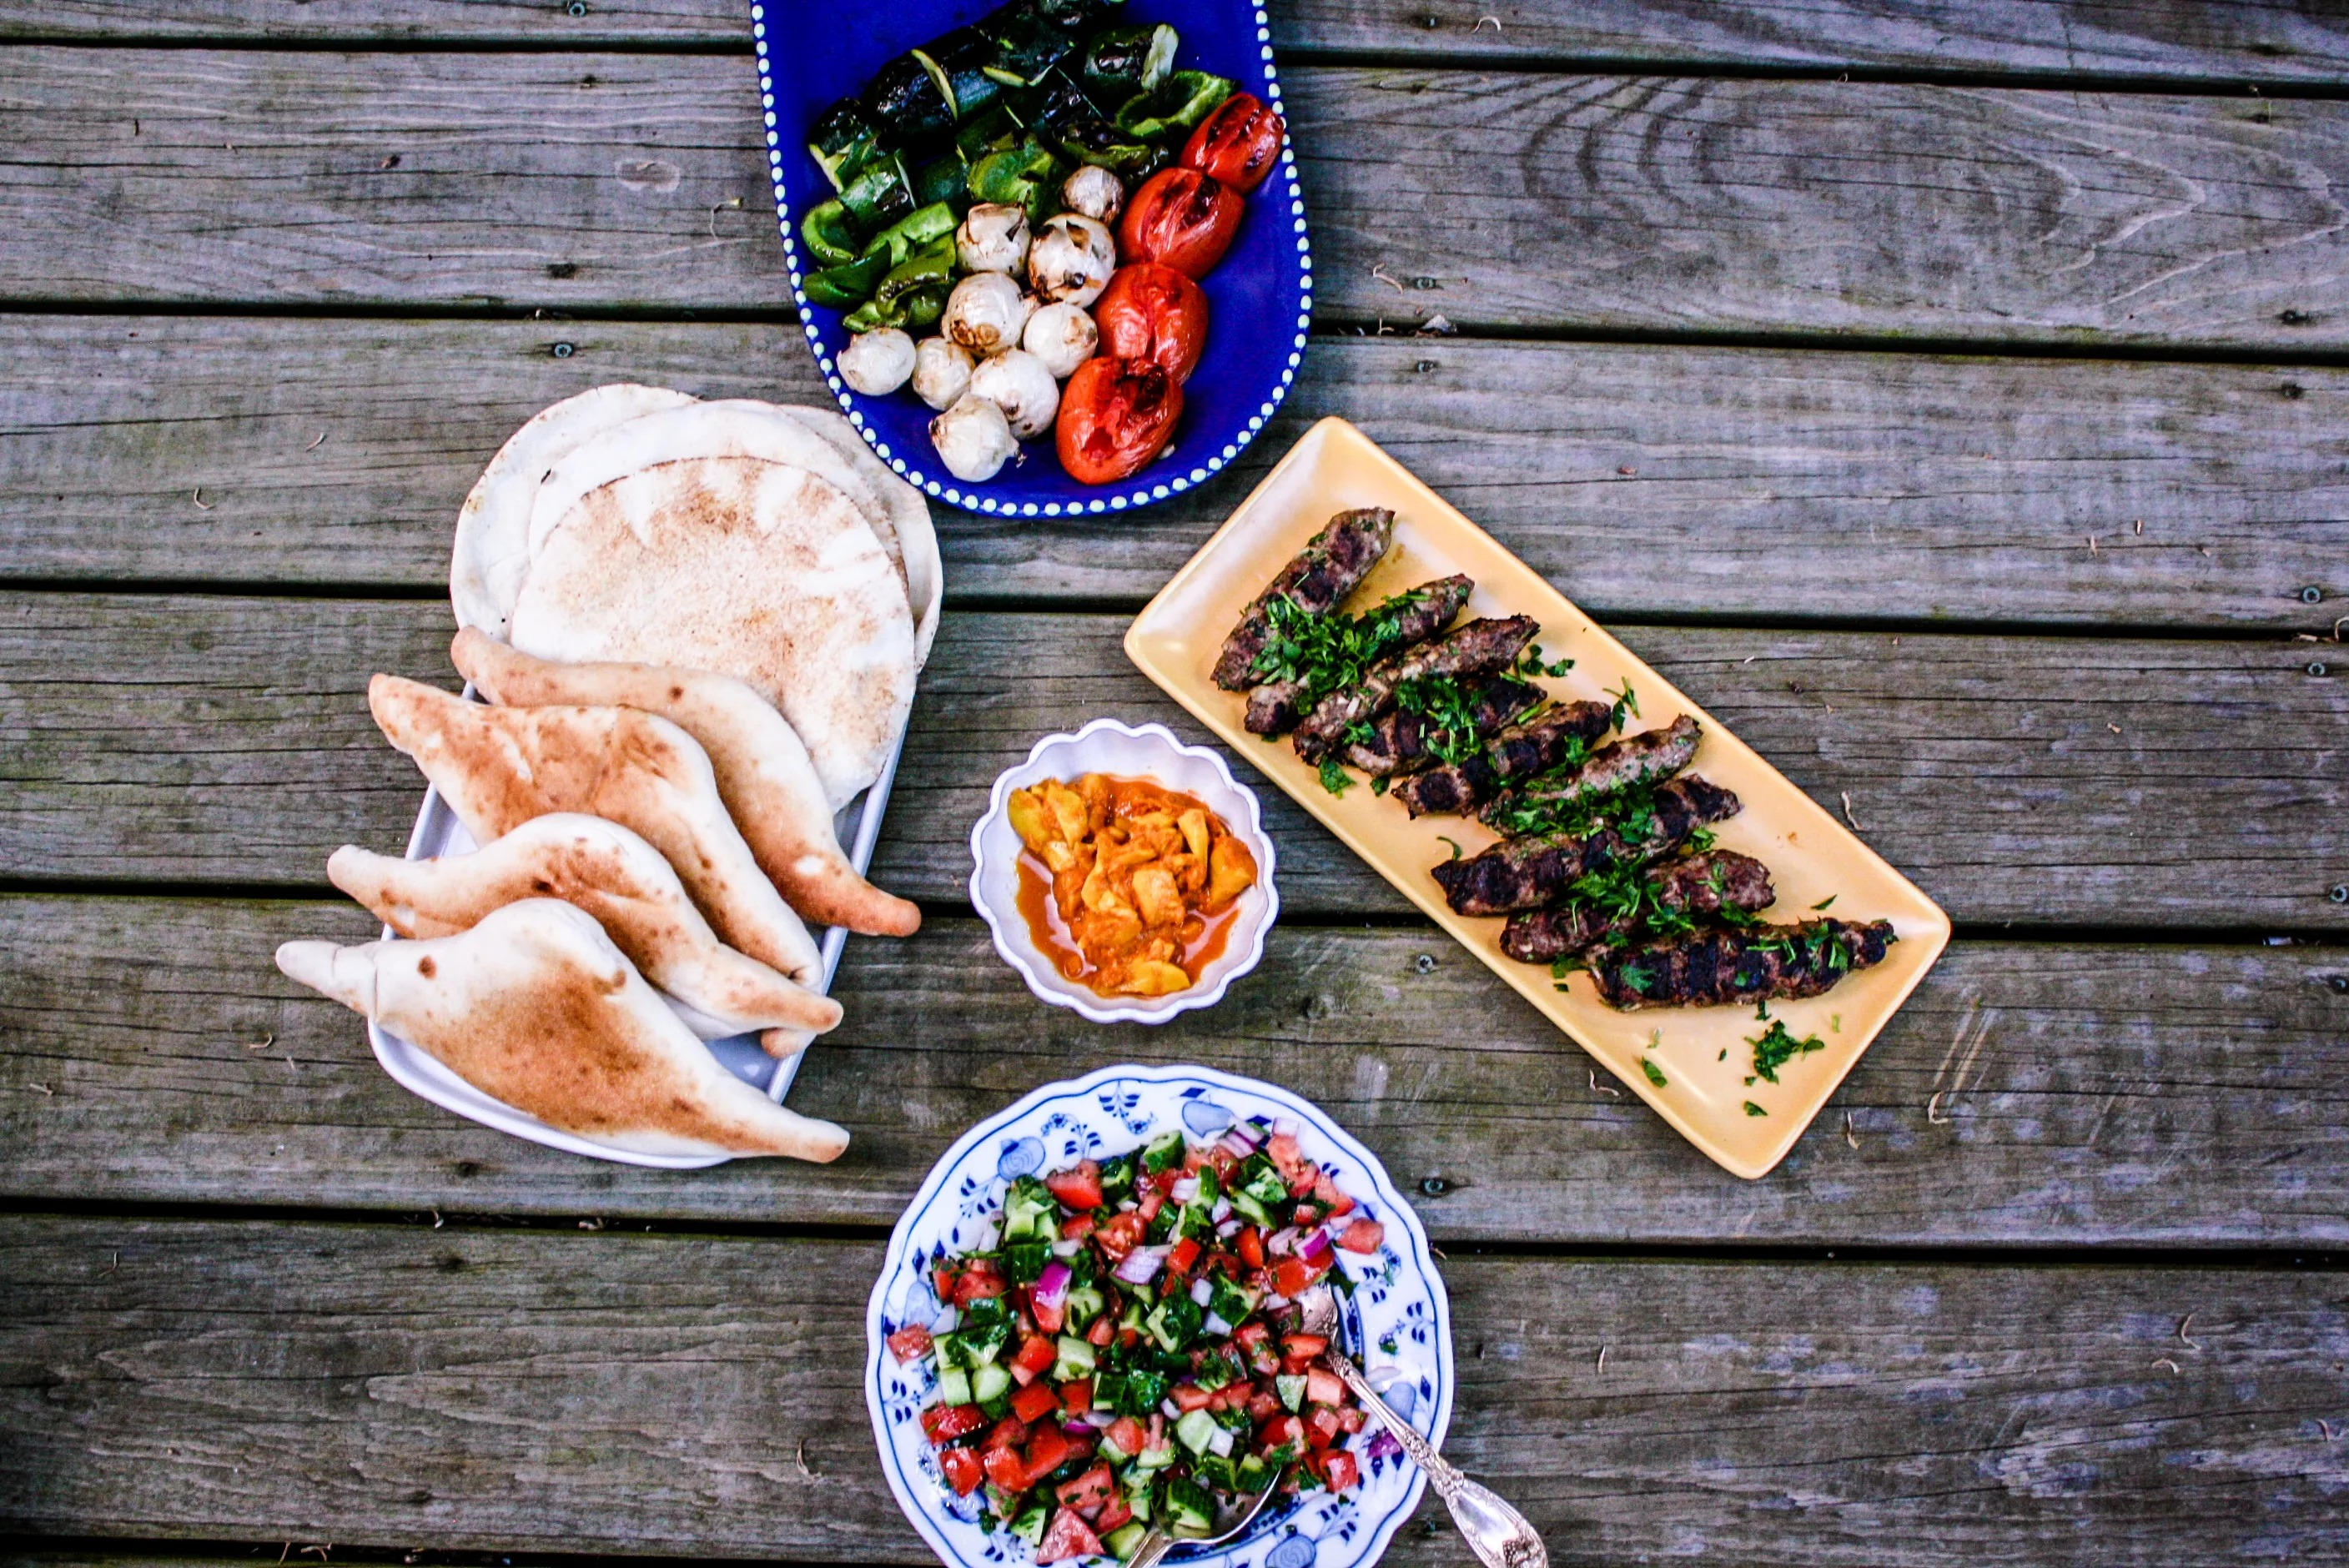 Trays of vegetables and pita sit on a wooden table